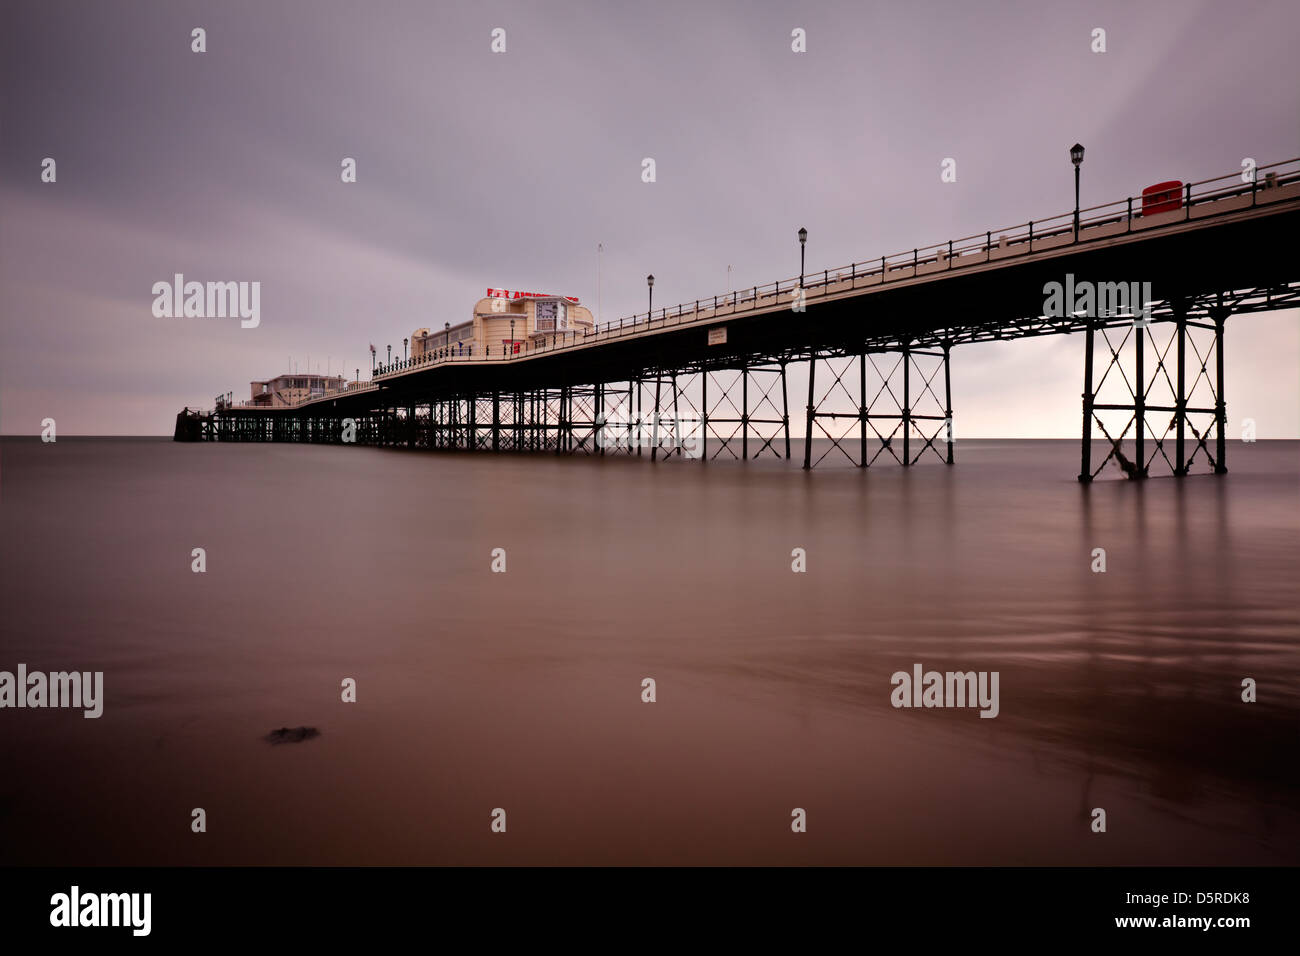 Worthing Pier, Sussex, England - Stock Image